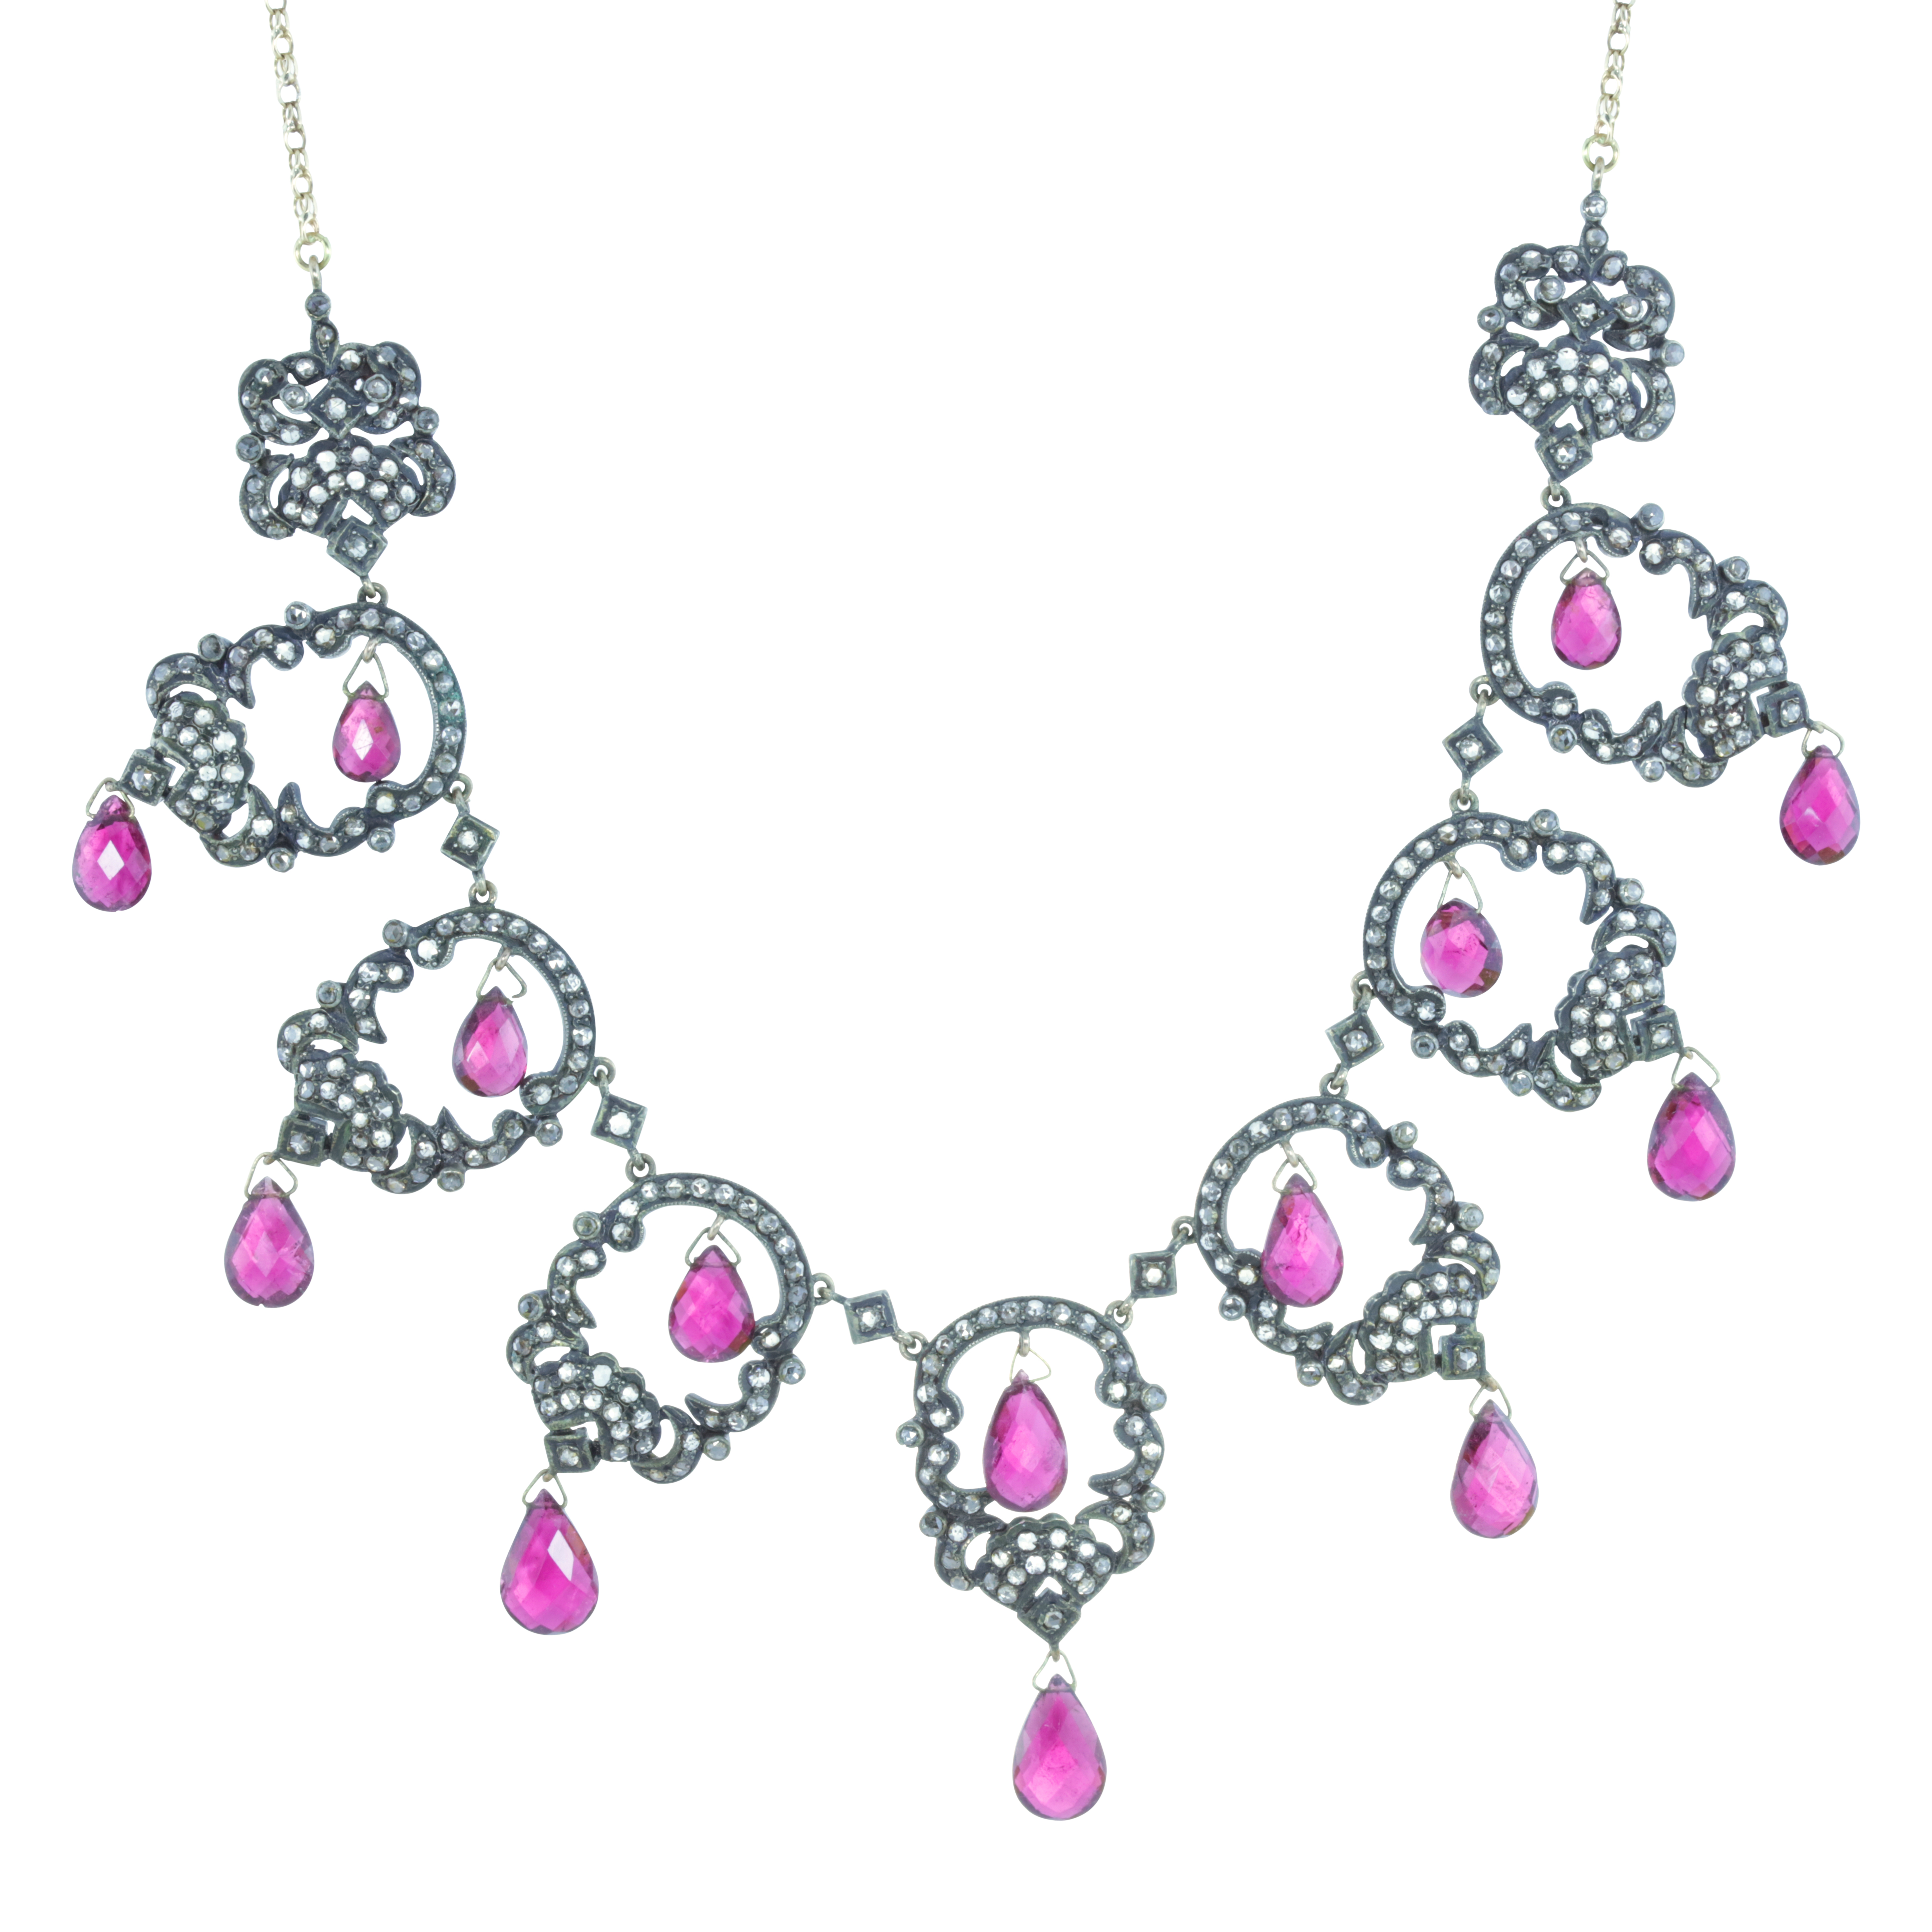 AN ANTIQUE TOURMALINE AND DIAMOND NECKLACE, 19TH CENTURY in 18ct yellow gold and silver, designed as